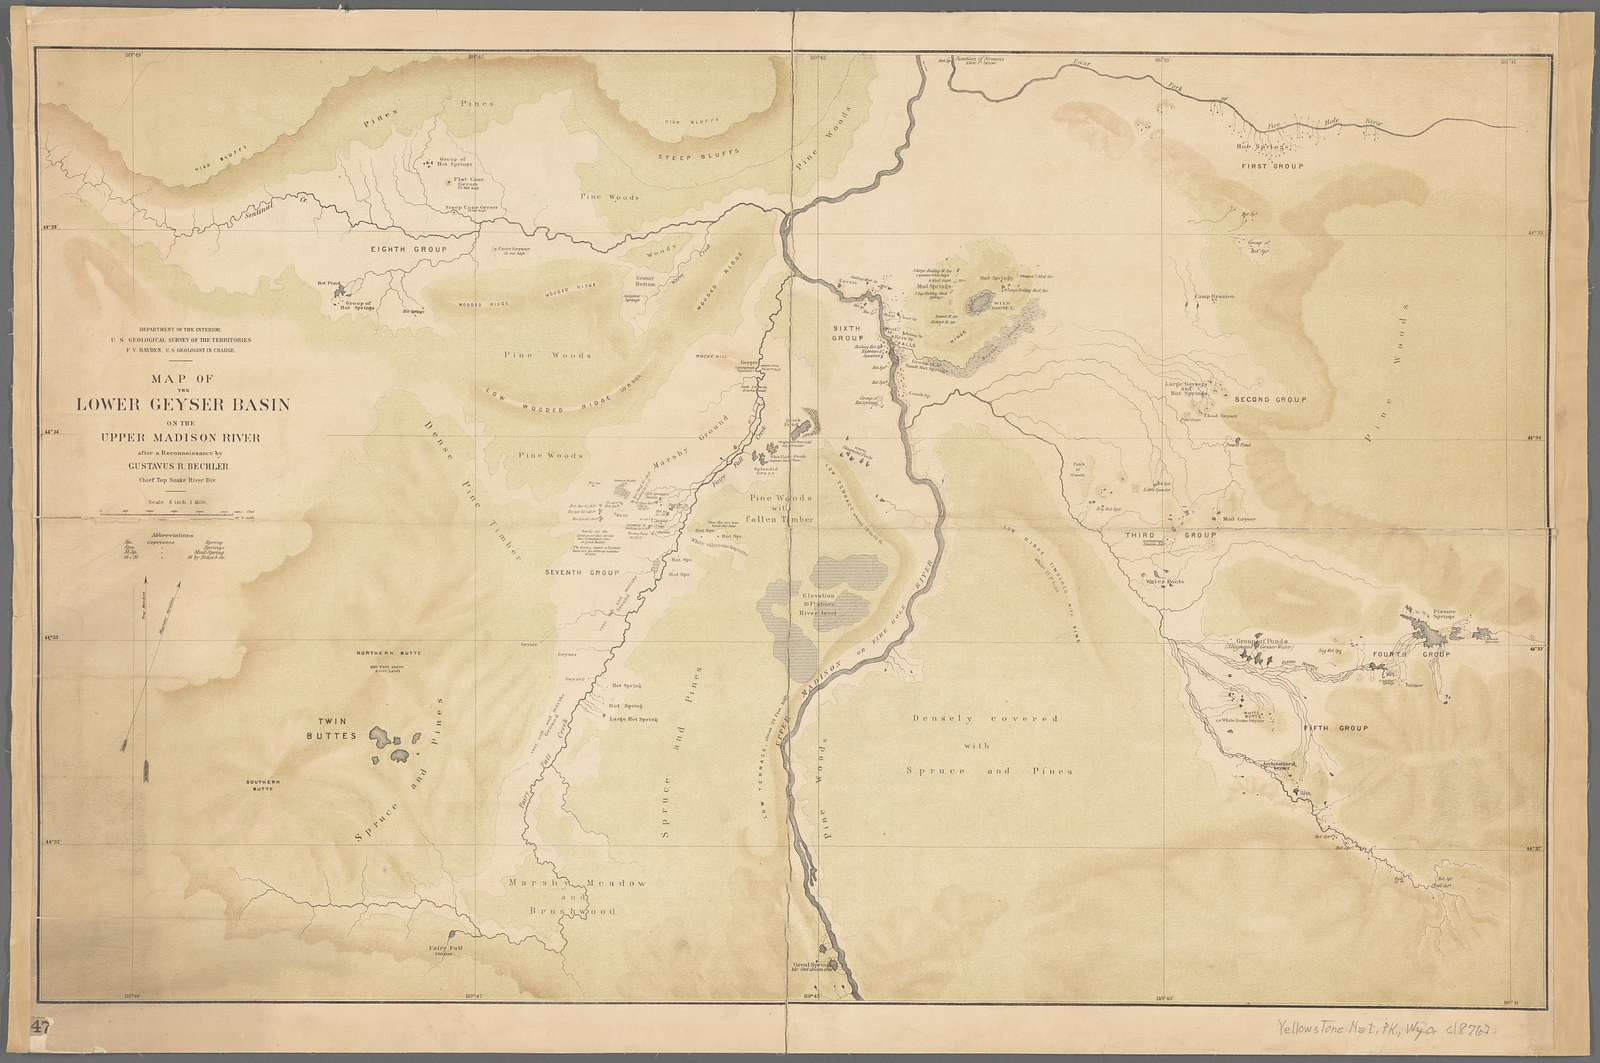 Map of the Lower Geyser Basin of the Upper Madison River : after a reconnoissance by Gustavus R. Bechler, Chief Top. Snake River. Div.